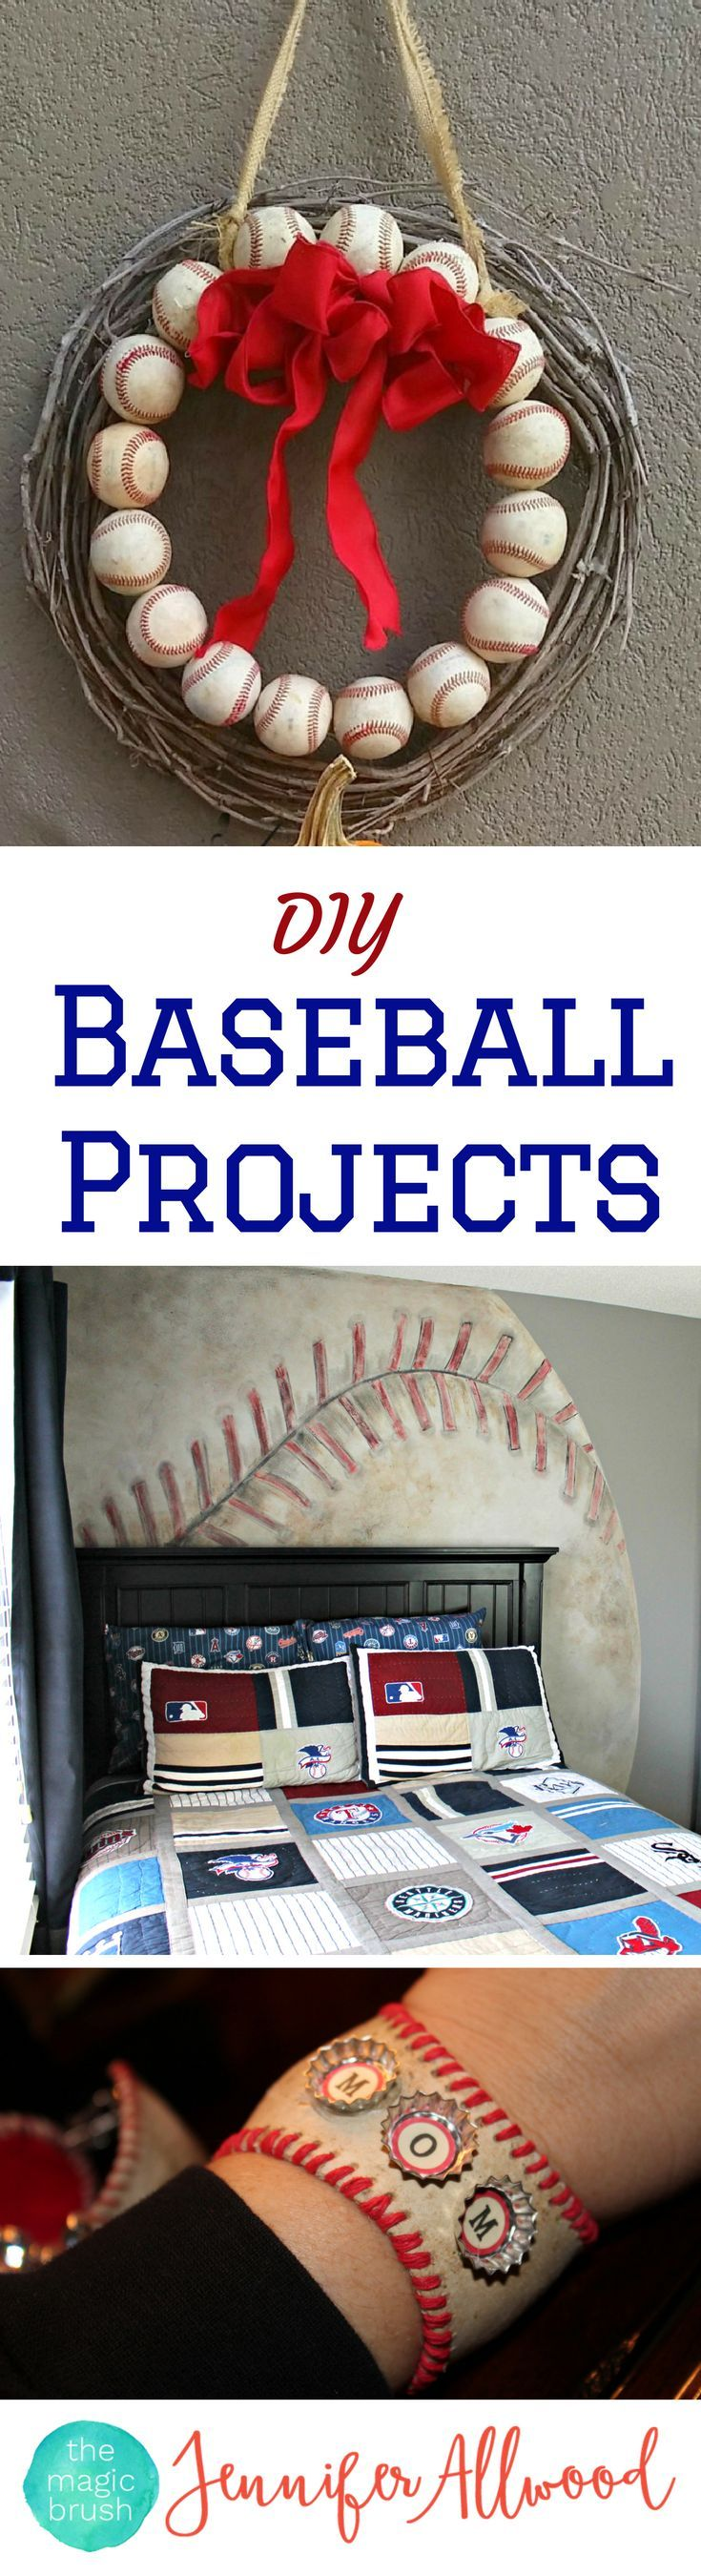 Great mens' gift ideas and boys' gift ideas - tons of DIY baseball projects and baseball gifts by theMagicBrushinc.com | Make your own baseball door decor and home decor